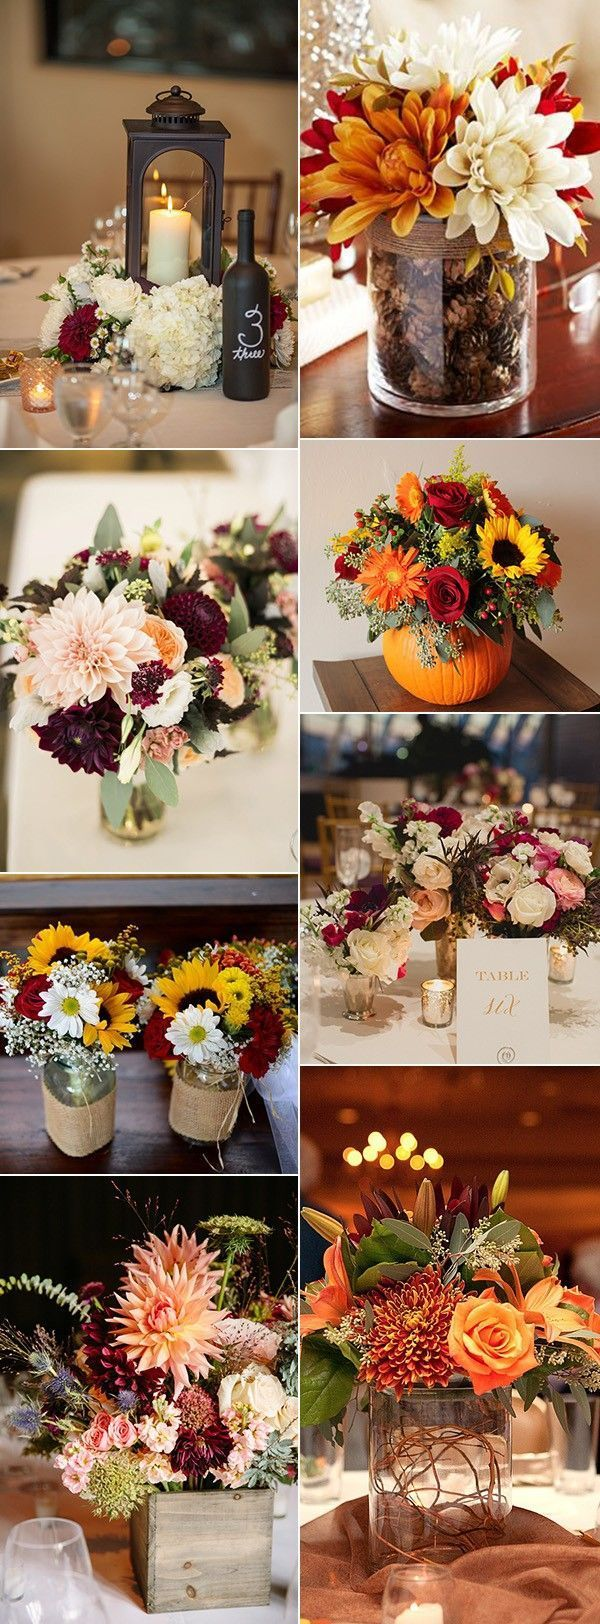 country rustic fall wedding centerpiece ideas Herbst